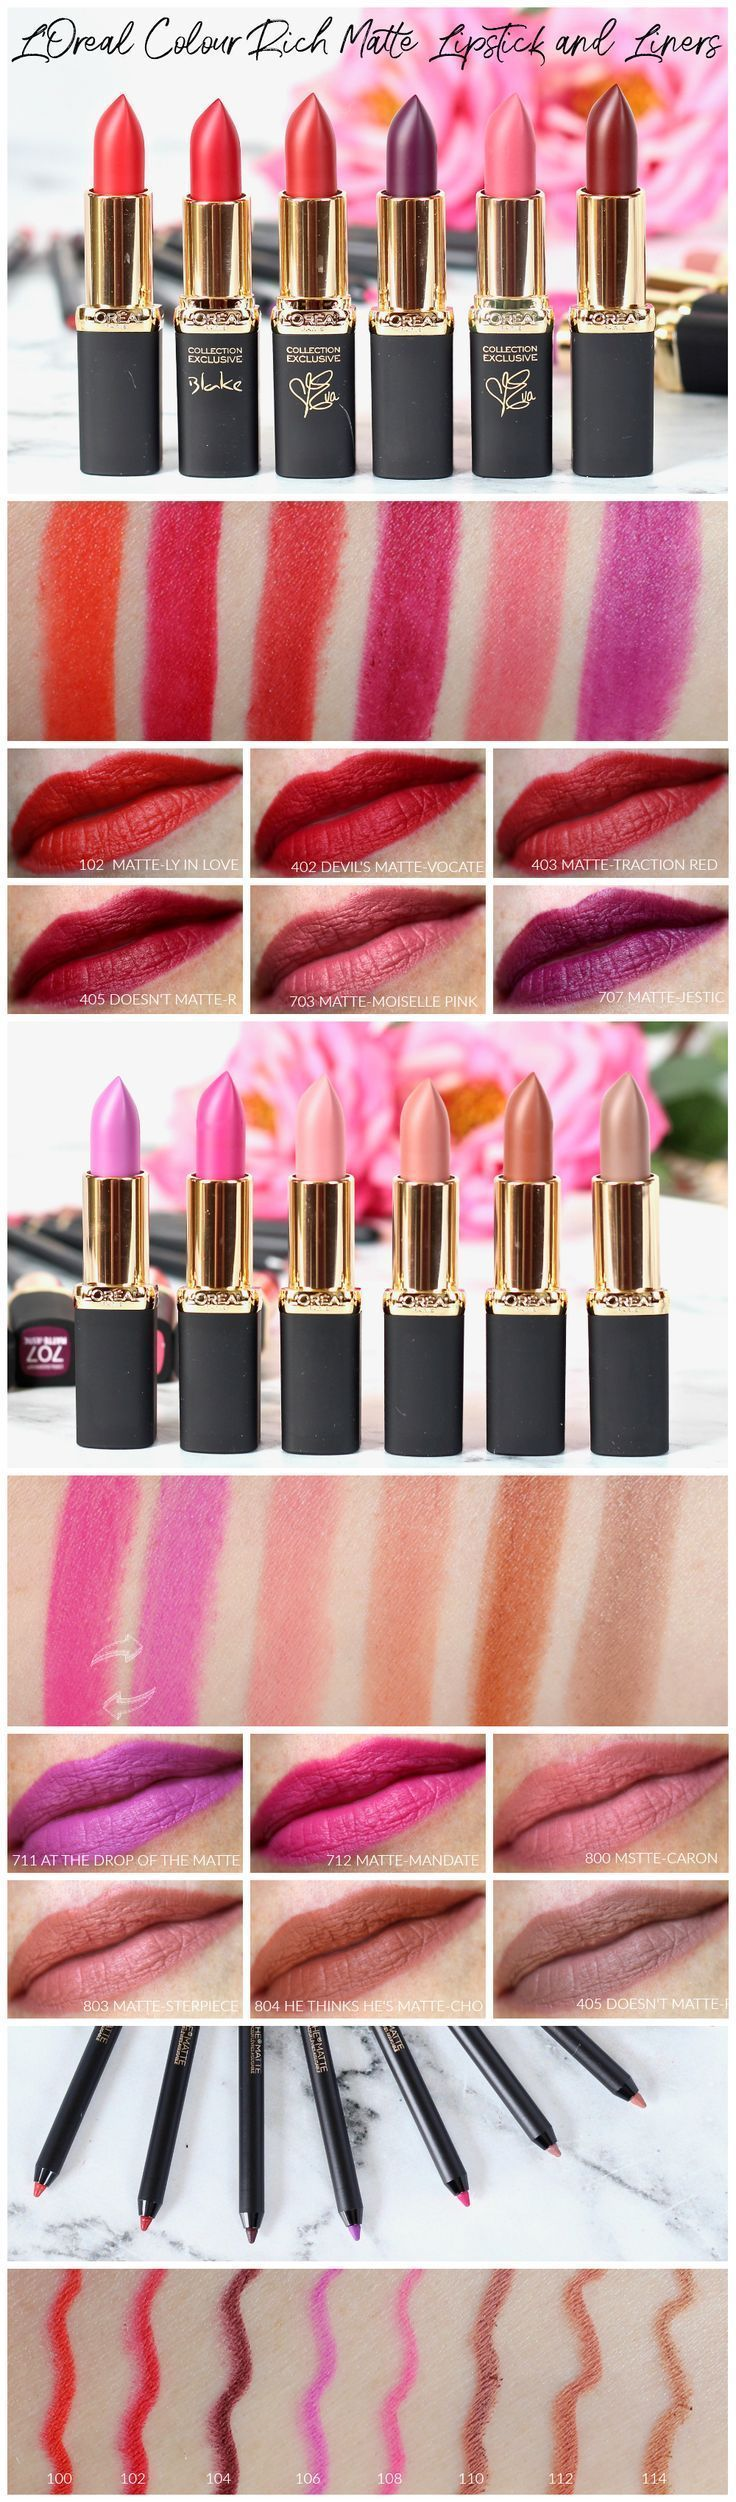 L'Oreal Colour Riche Matte Lipsticks and Liners Review and